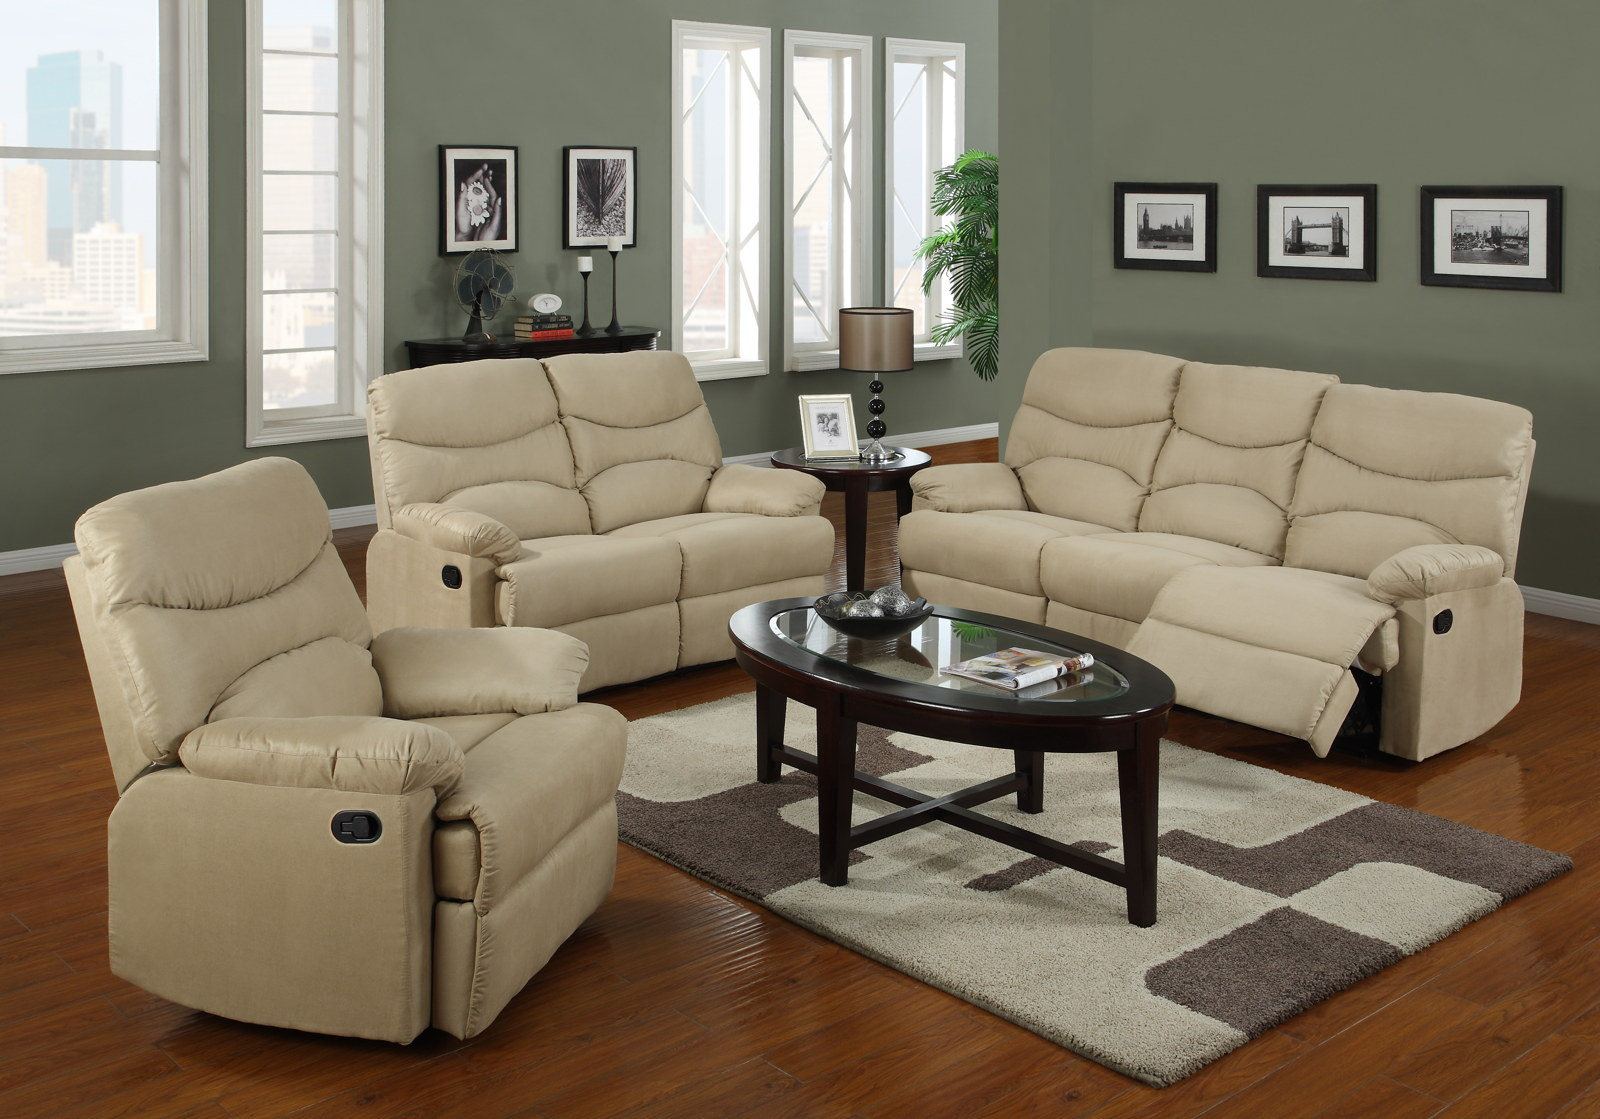 G407 for 3 piece living room set cheap